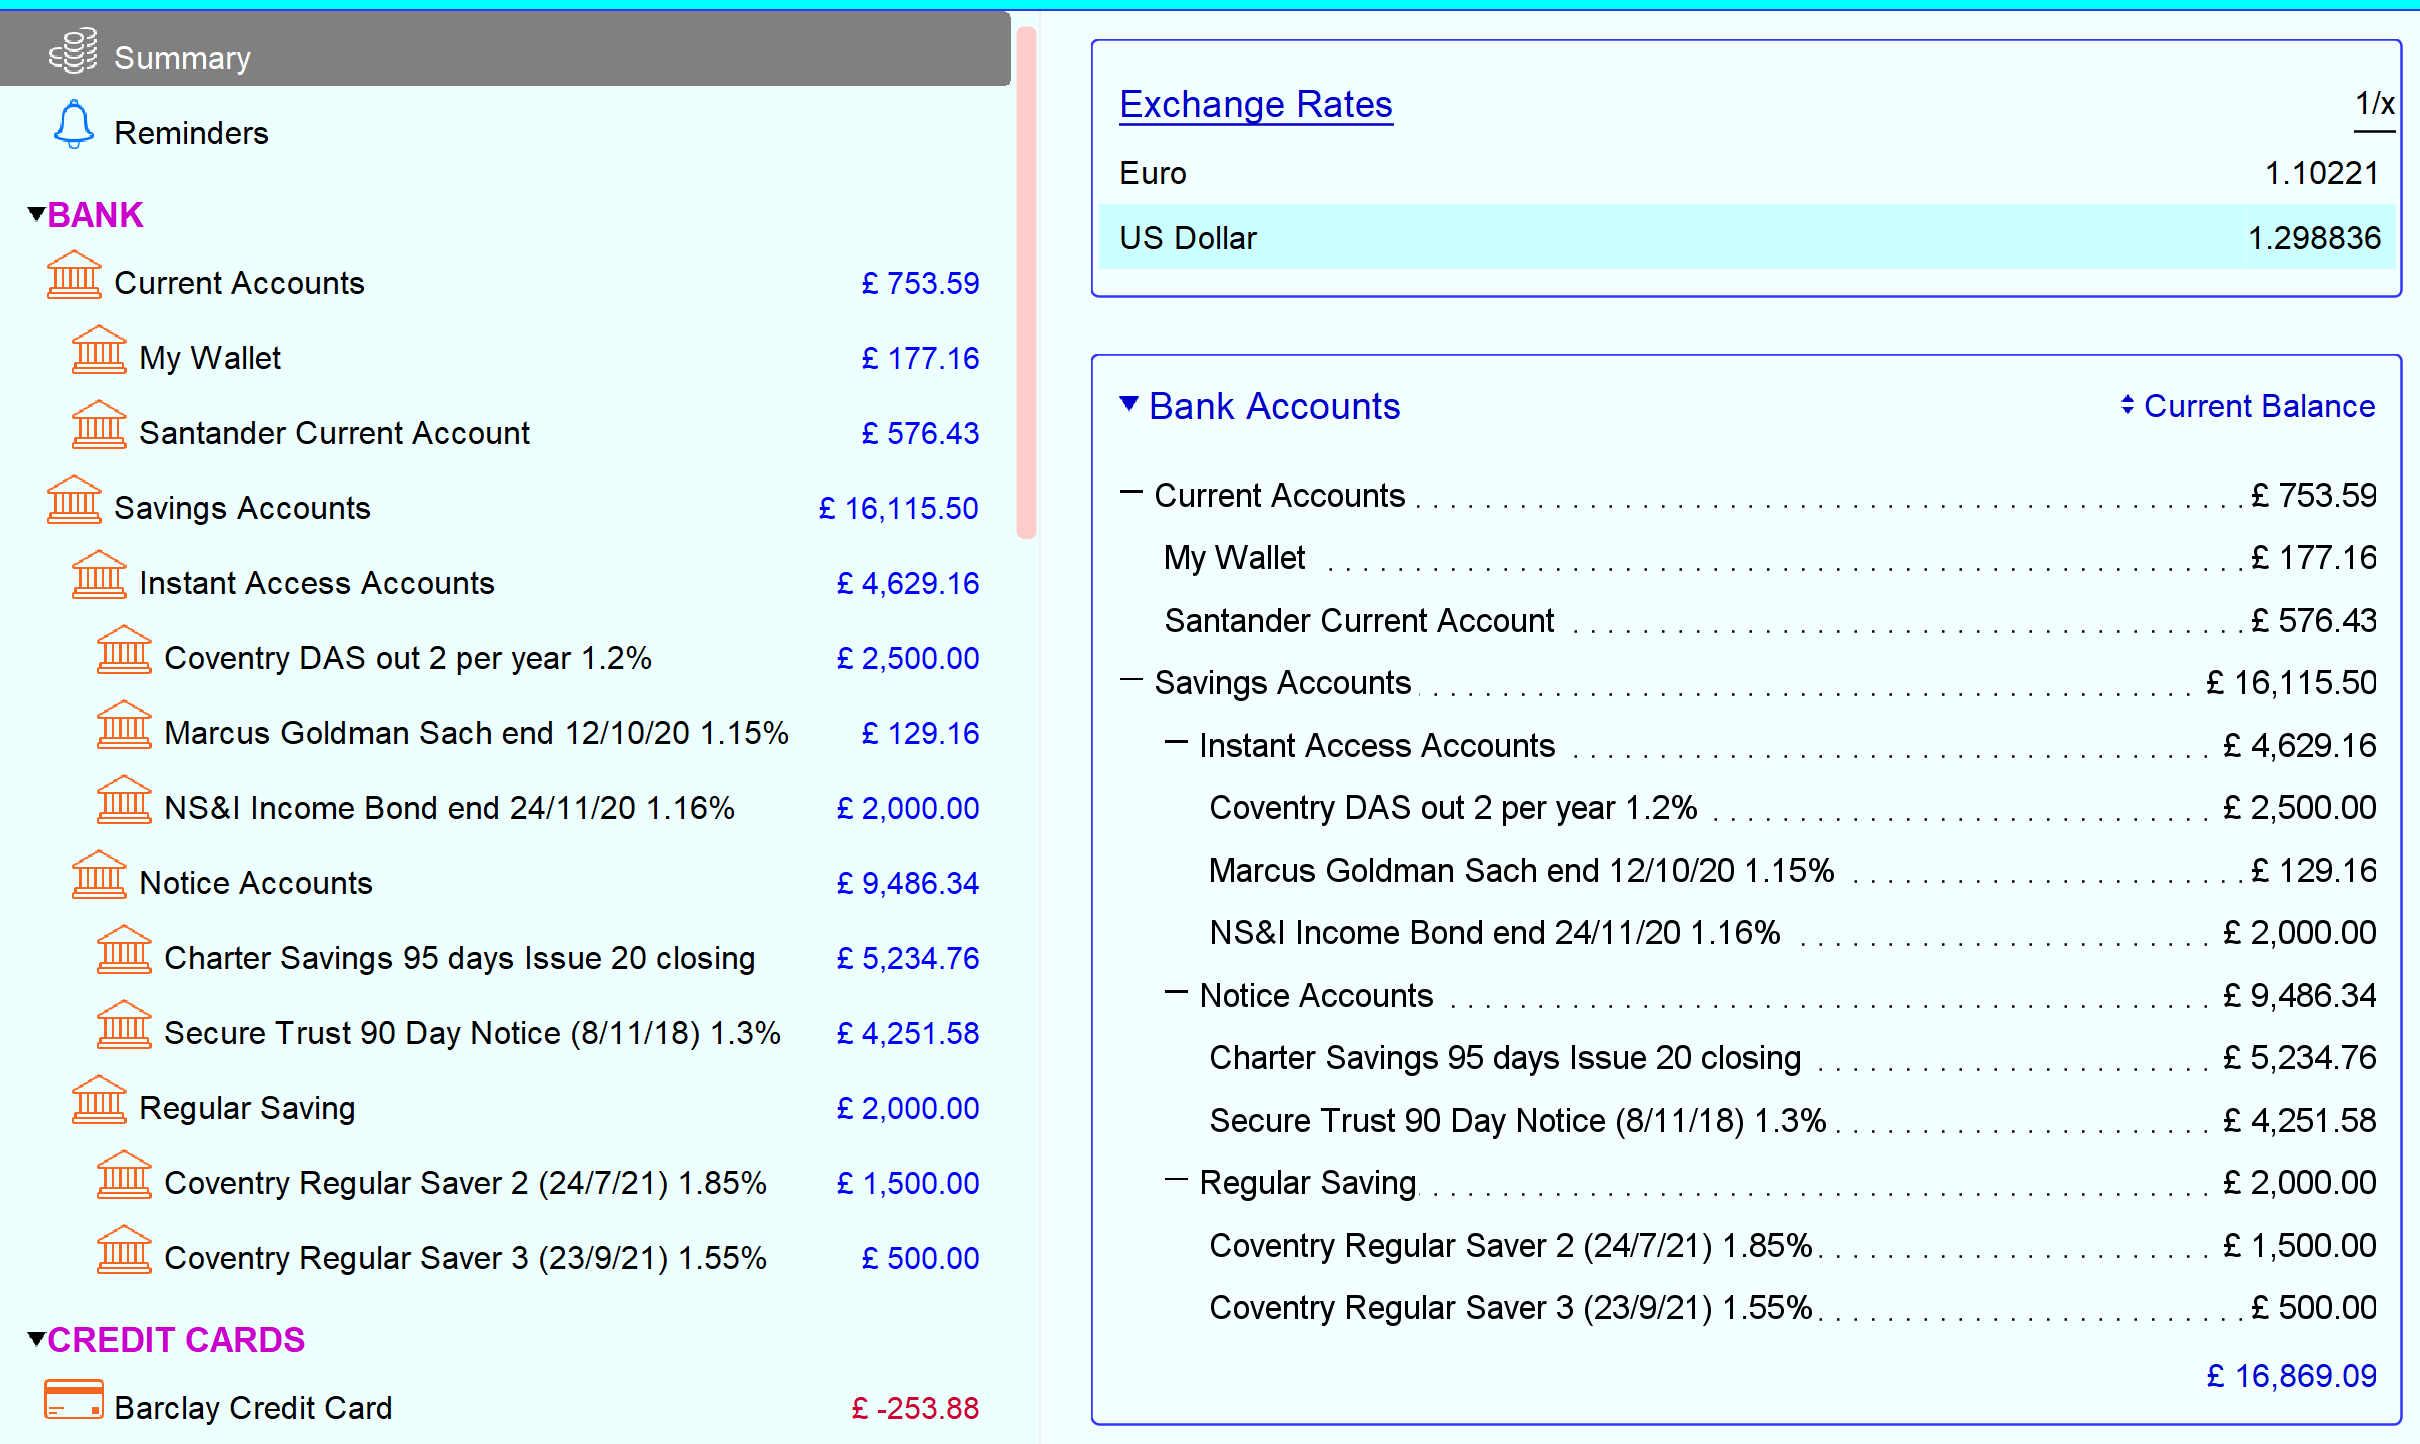 Side_bar_and_summary_page_bank_account_area_both_set_for_current